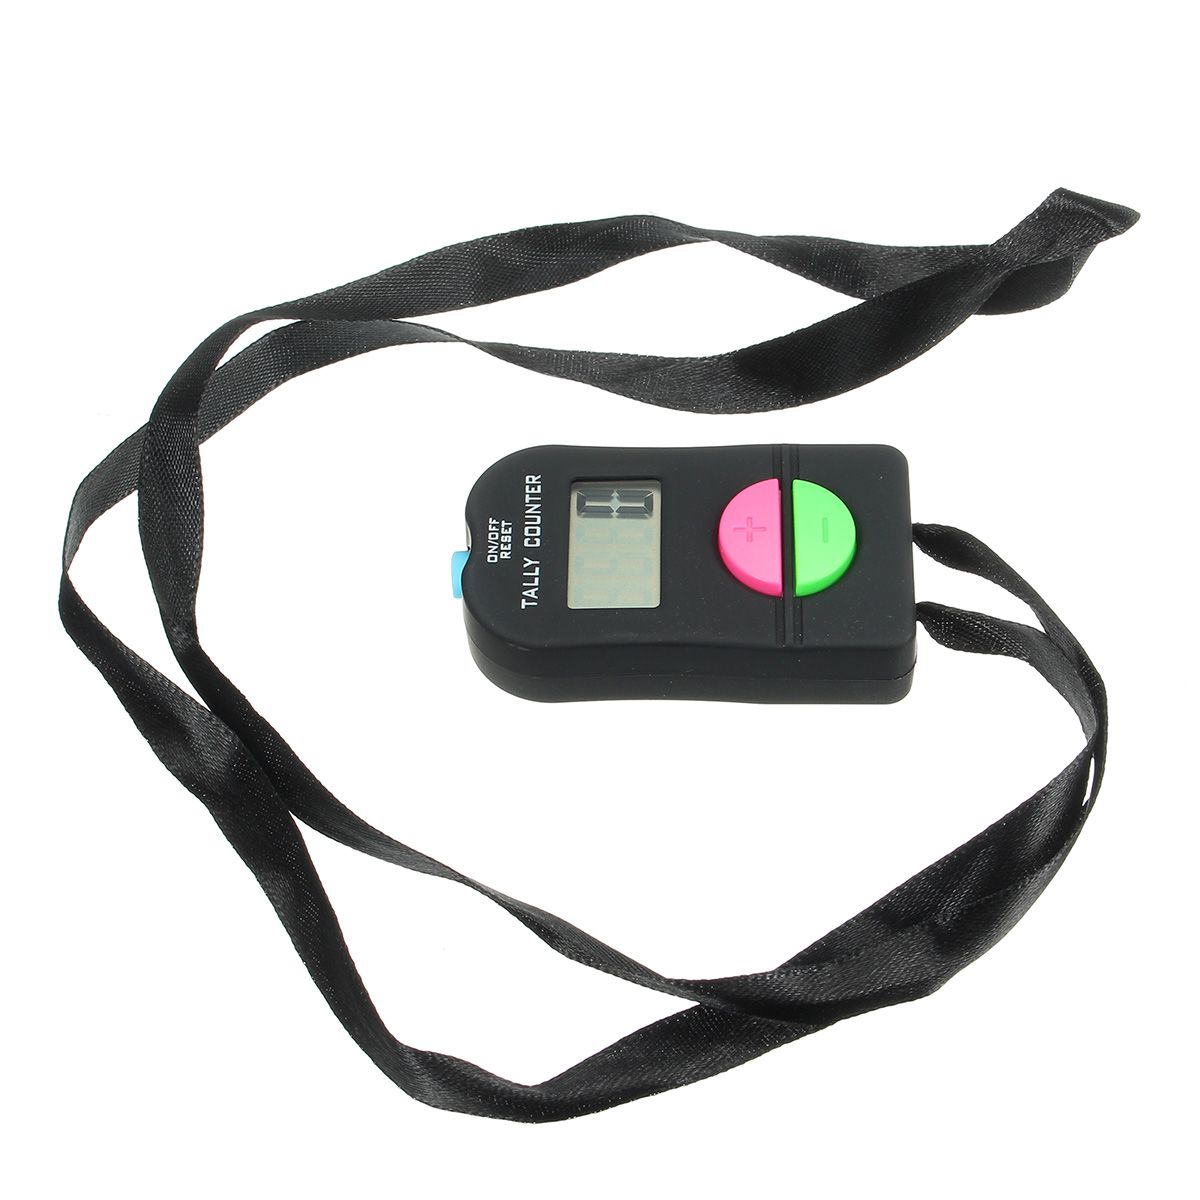 Digital LCD Electronic Finger Hand Manual Ring ON//OFF RESET Tally Counter